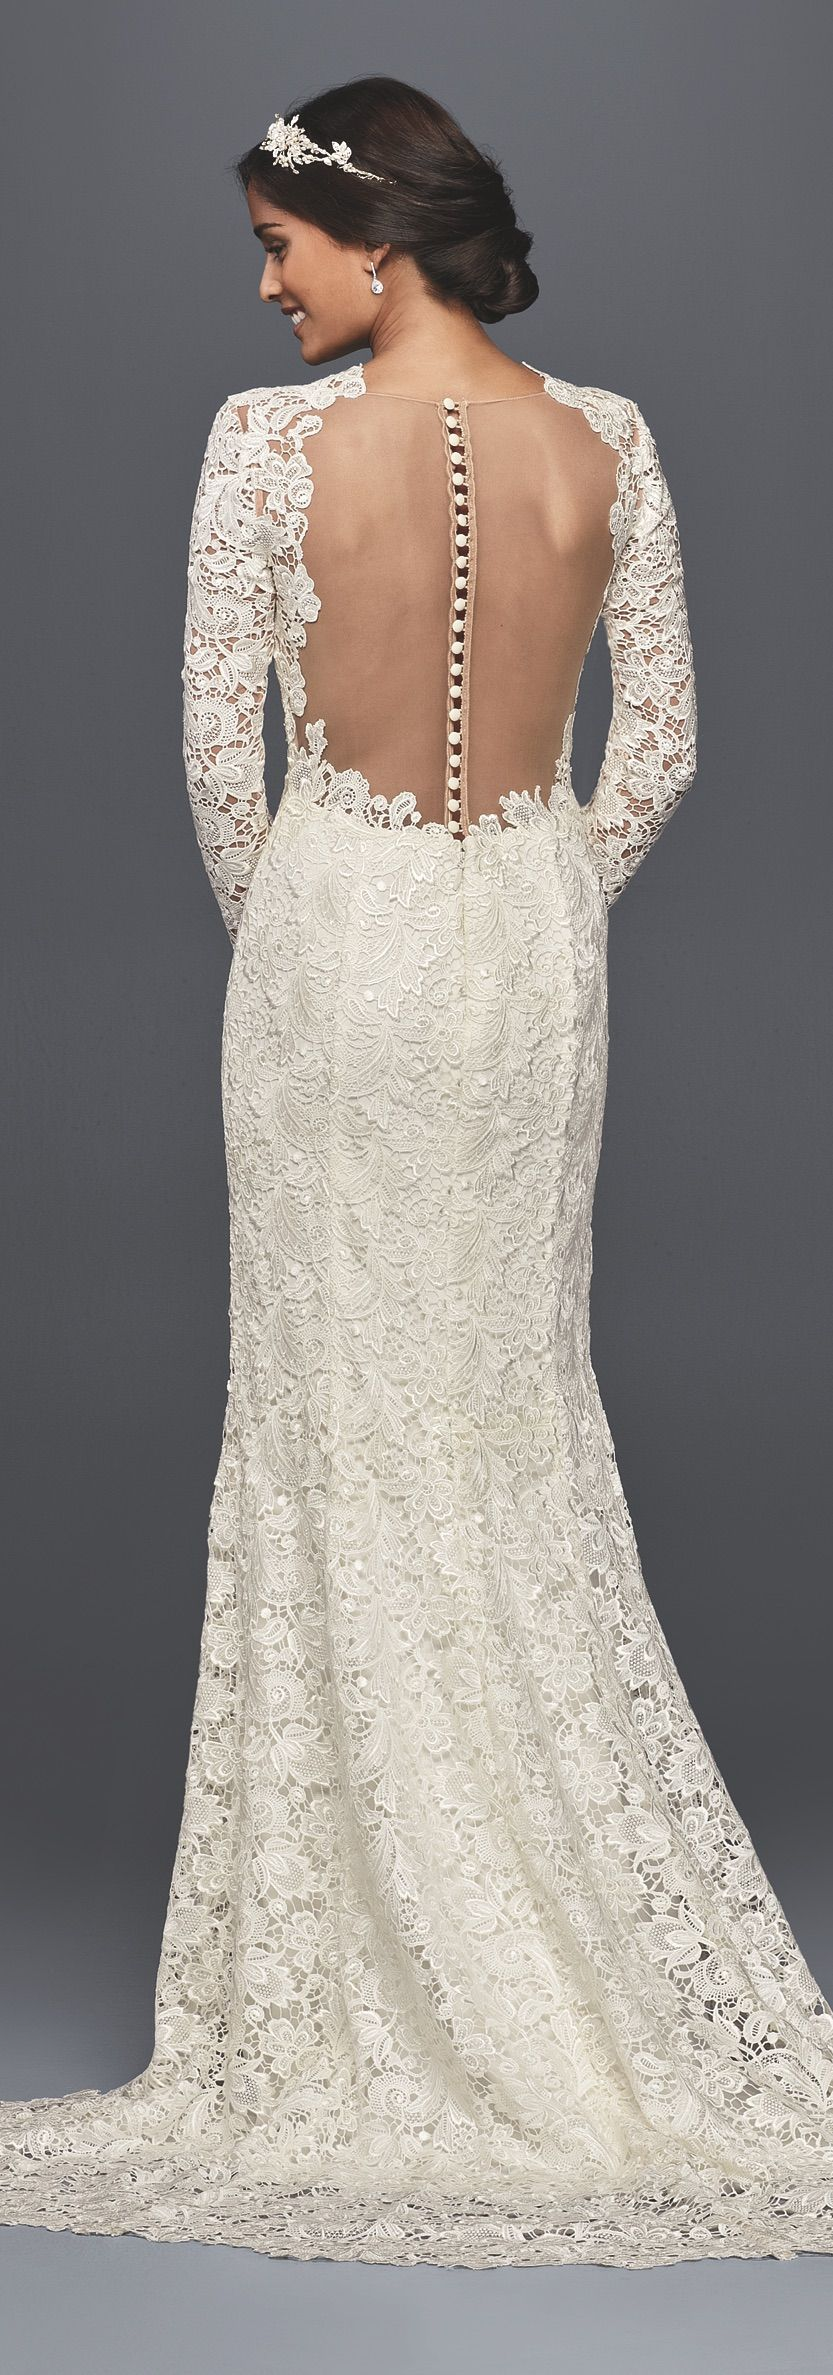 Long sleeve lace wedding dress with open back david 39 s for Wedding dress david bridal